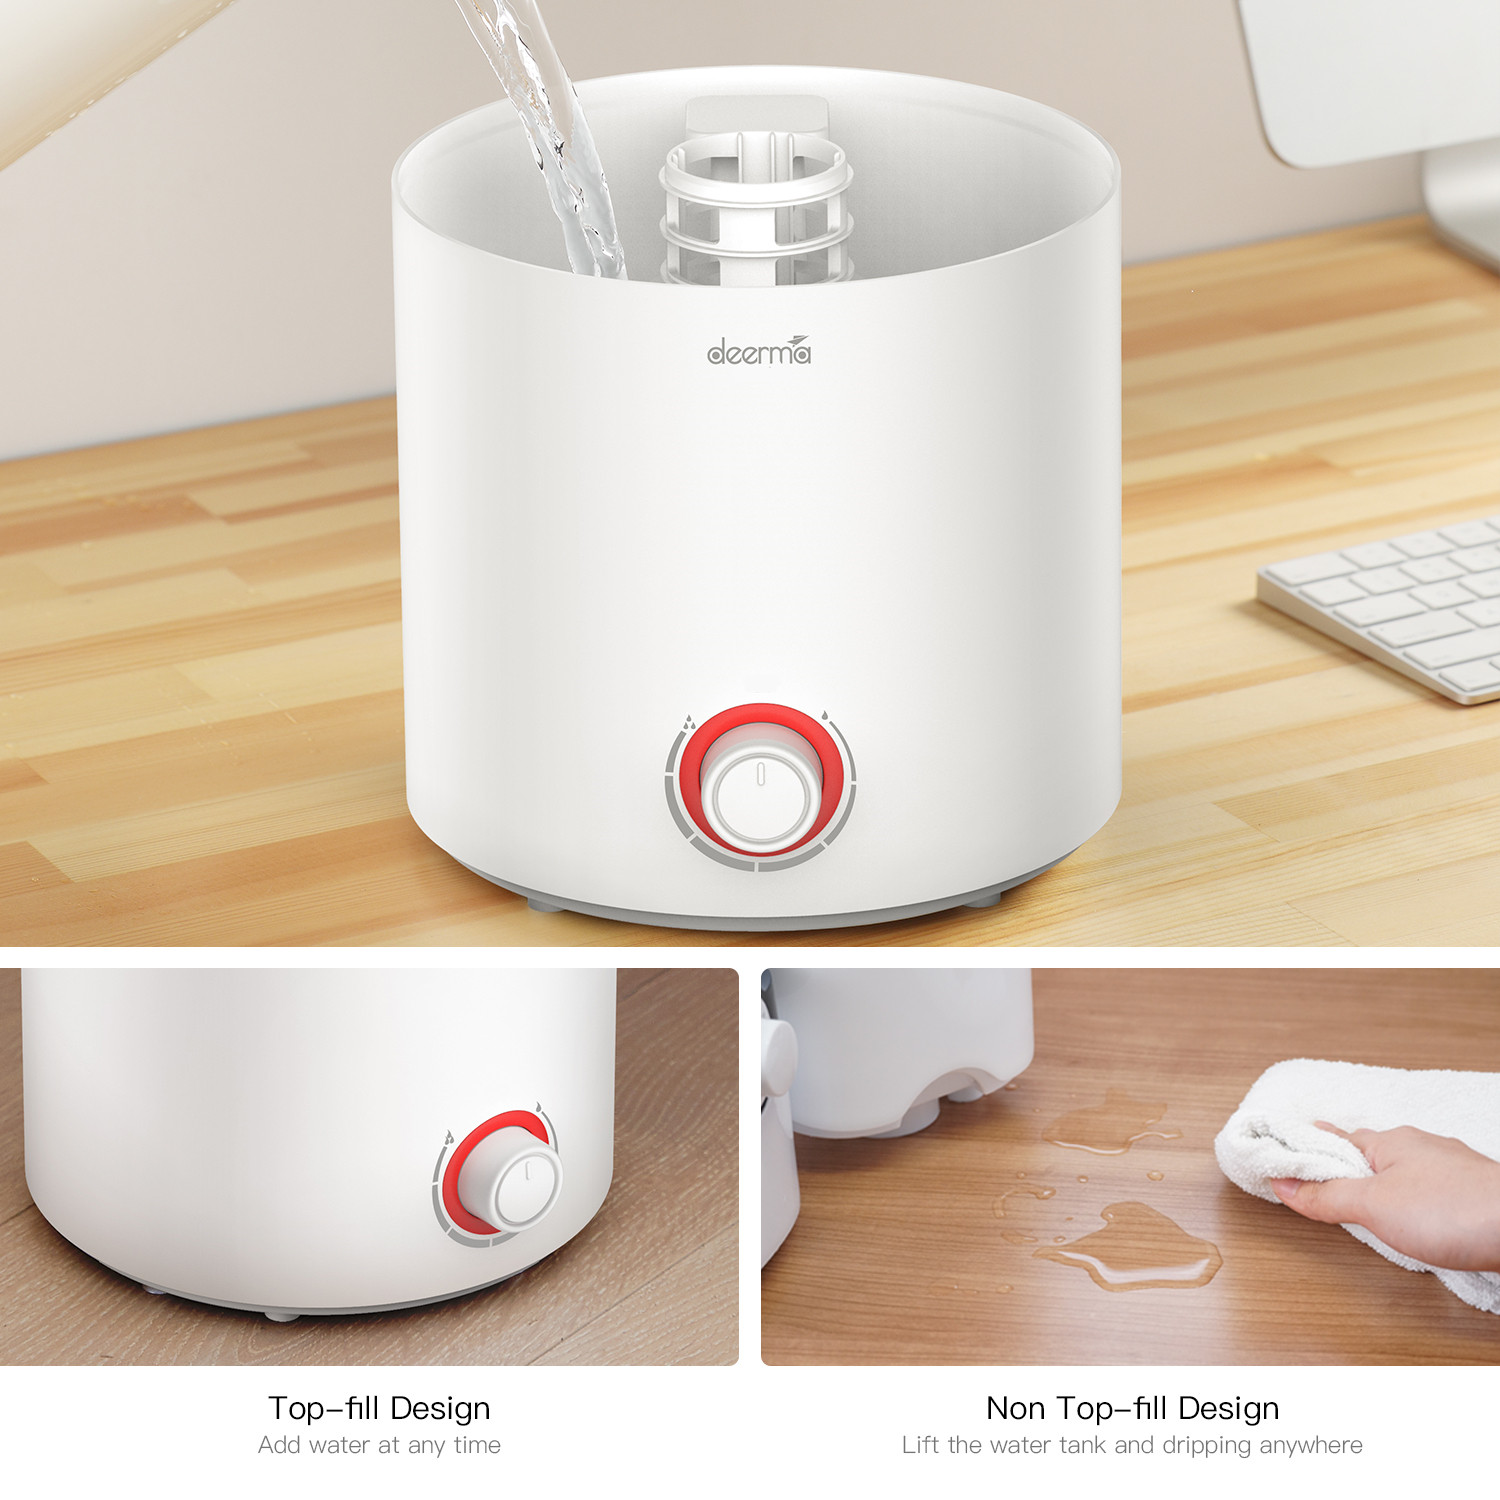 [US Direct] Original DEERMA 2 in 1 Top Fill Ultrasonic Humidifier & Essential Oil Diffuser with 360° Rotatable Mist Outlet, 2.5L Water TankVolume White